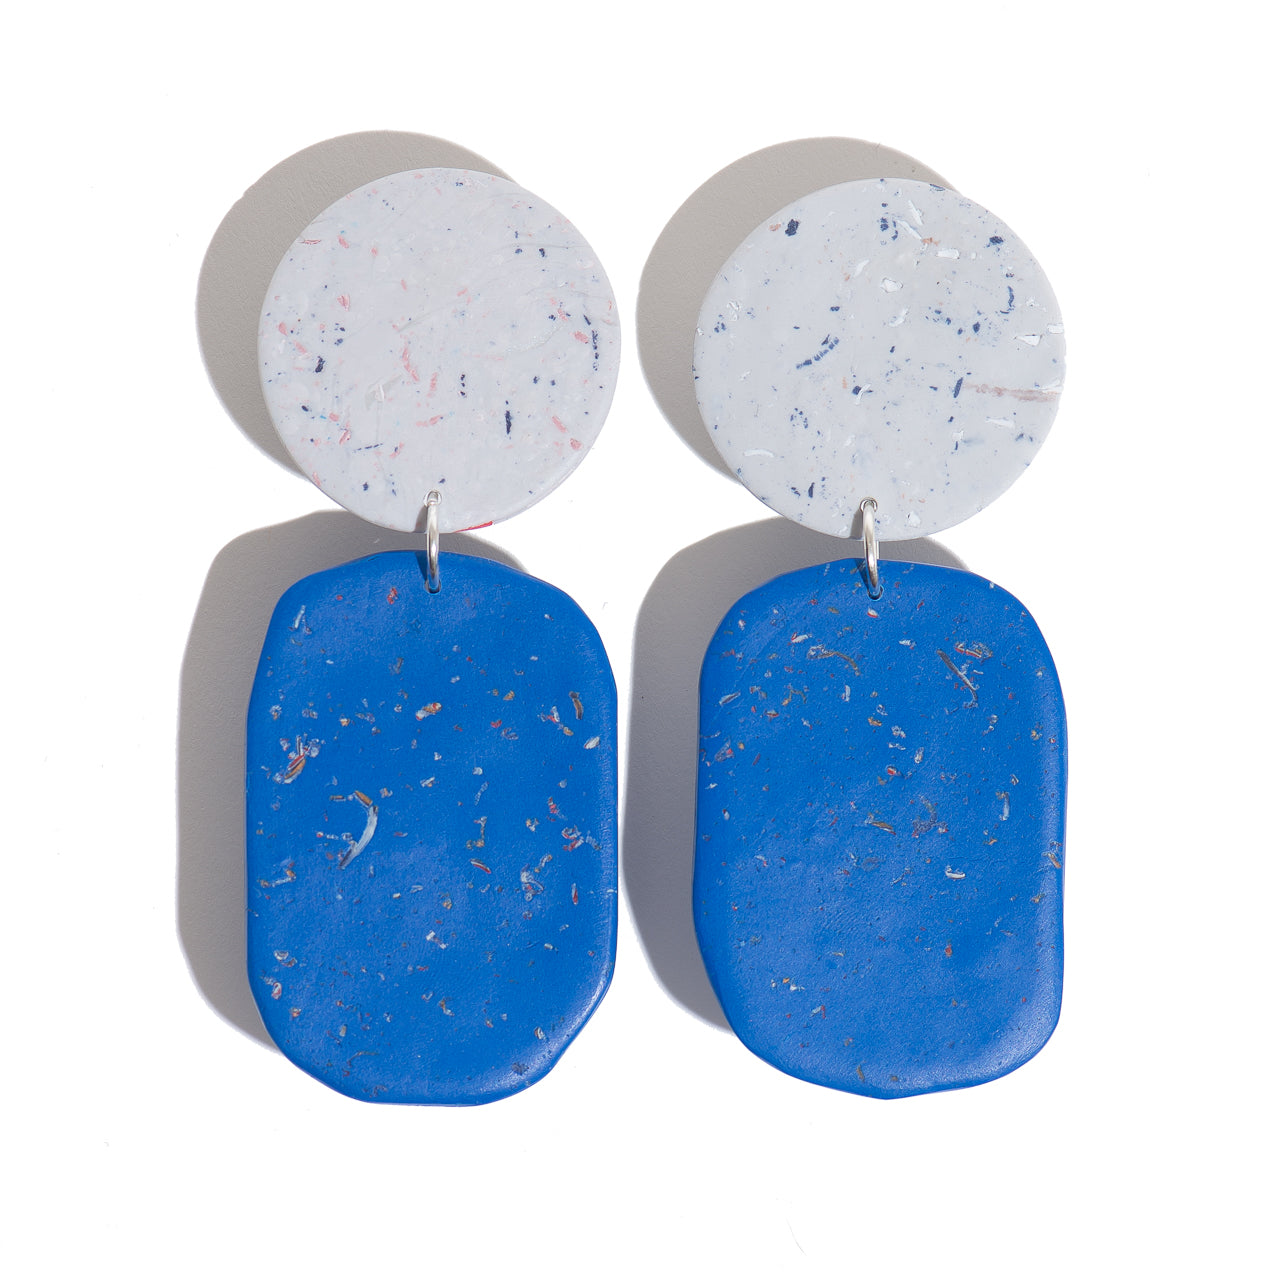 Soft Form Statement Earrings